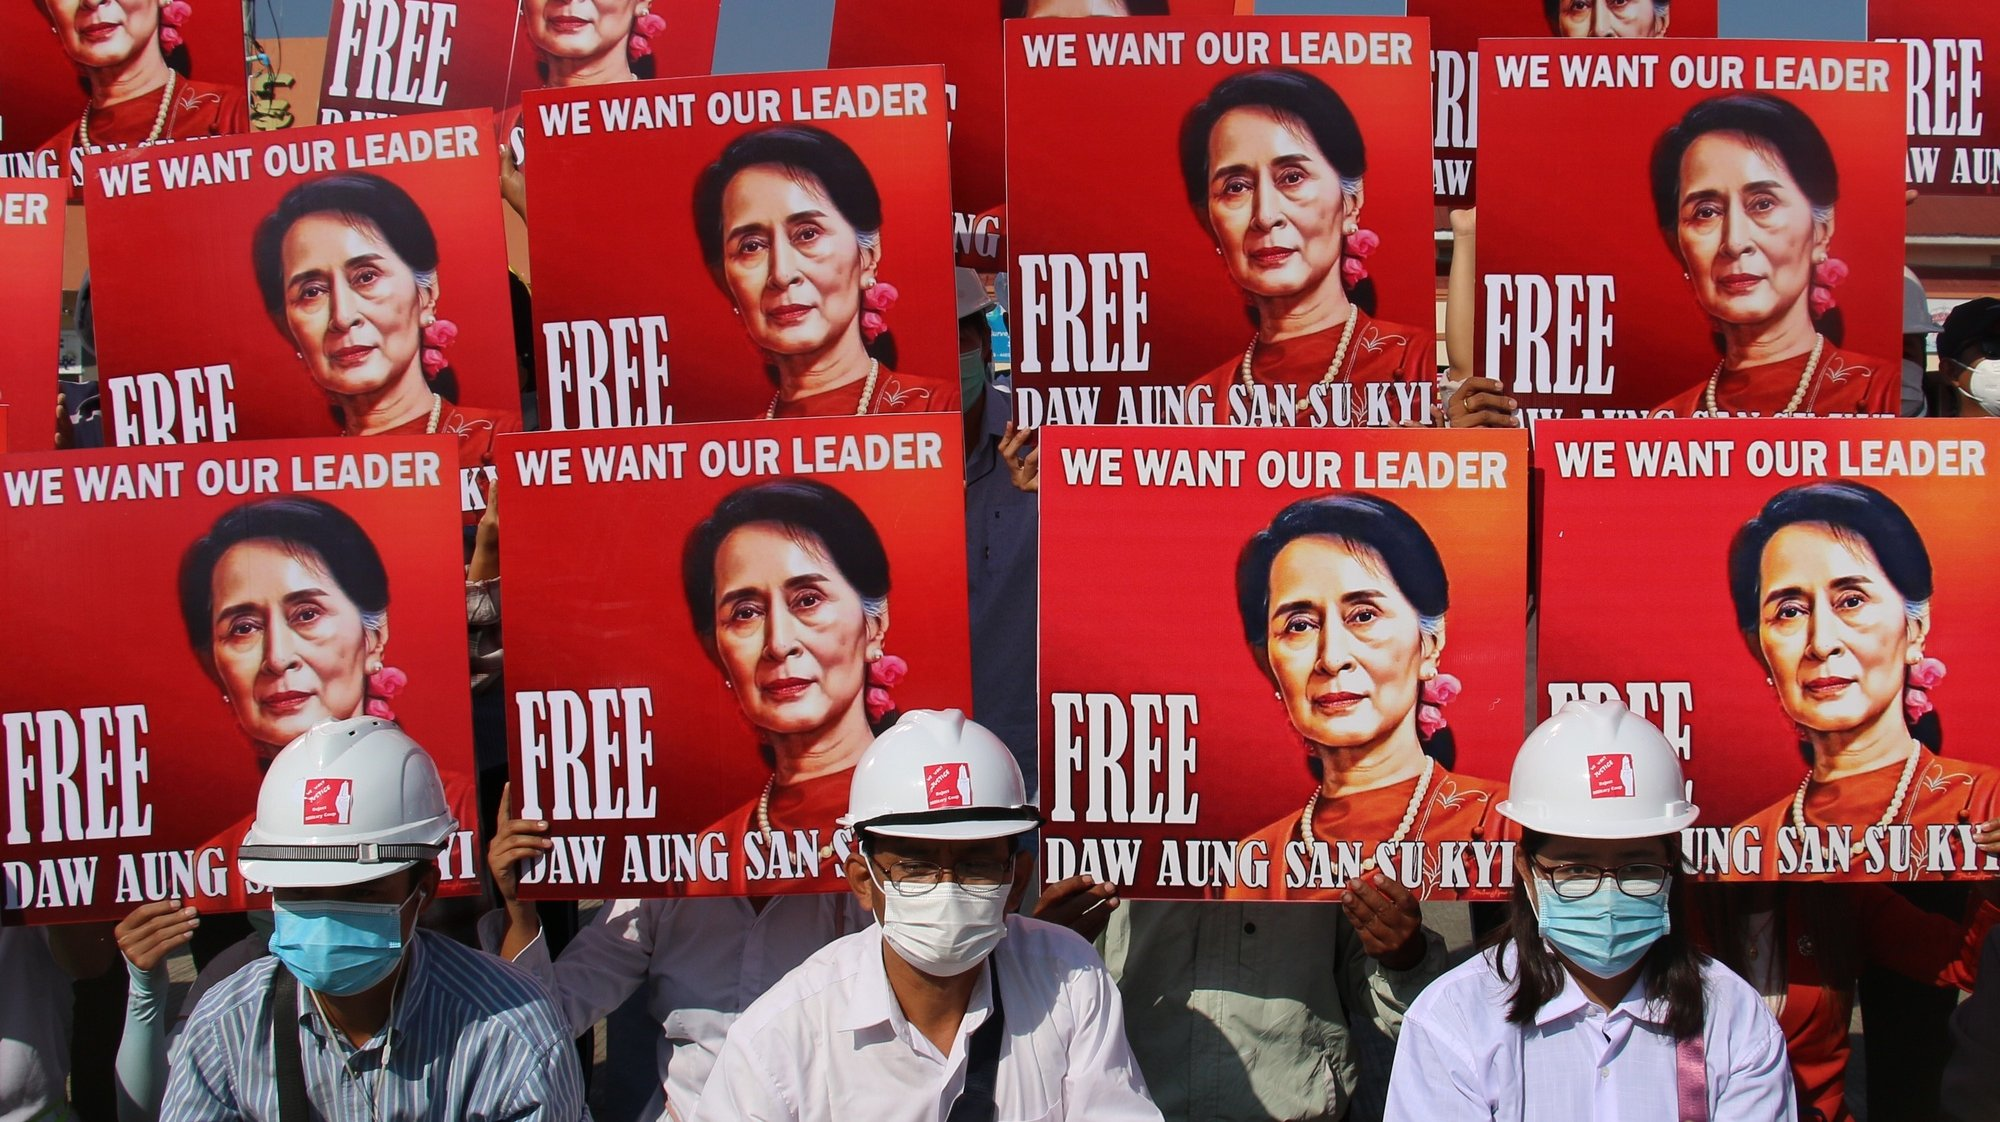 epa09269323 (FILE) - Demonstrators hold up placards calling for the release of detained Myanmar State Counselor Aung San Suu Kyi during a protest against the military coup in Naypyitaw, Myanmar, 15 February 2021(reissued 14 June 2021). The trial of deposed leader Aung San Suu Kyi will hear its first testimony in court on 14 June 2021. Aung San Suu Kyi was detained in February 2021 after her government was overthrown by the military in a coup.  EPA/STRINGER